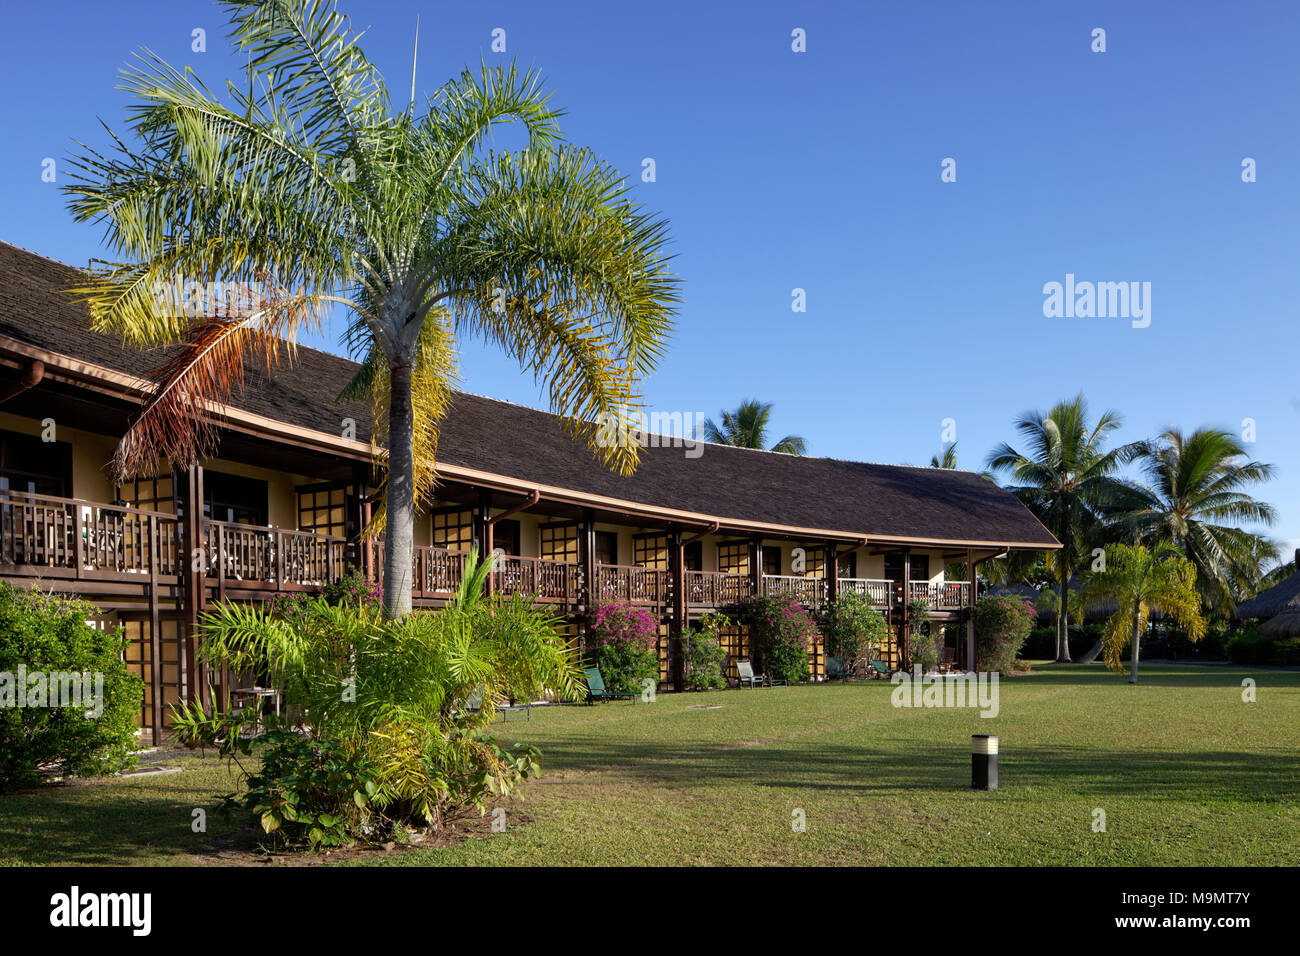 Building with apartments, Palms, Garden, Luxury hotel, Interconti Resort, Moorea, Society Islands, Islands under the Wind - Stock Image